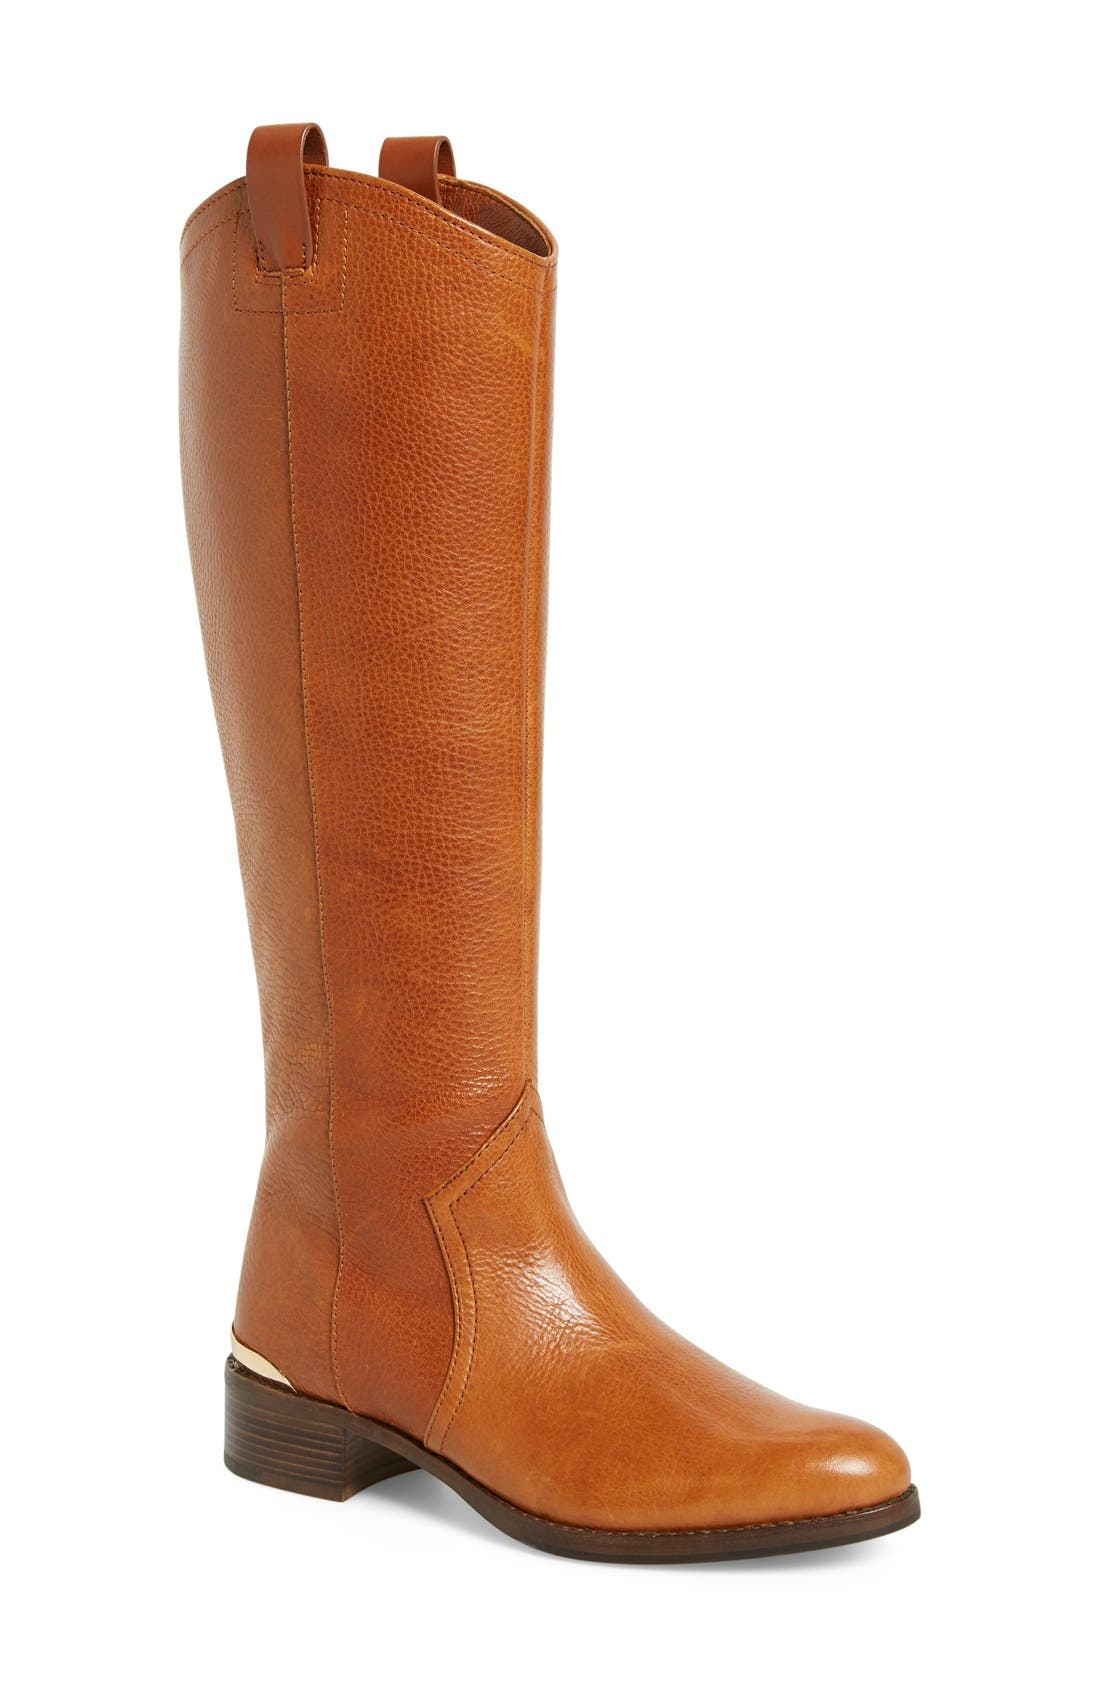 Main Image - Louise et Cie 'Zada' Knee High Leather Riding Boot (Women) (Wide Calf) (Nordstrom Exclusive)